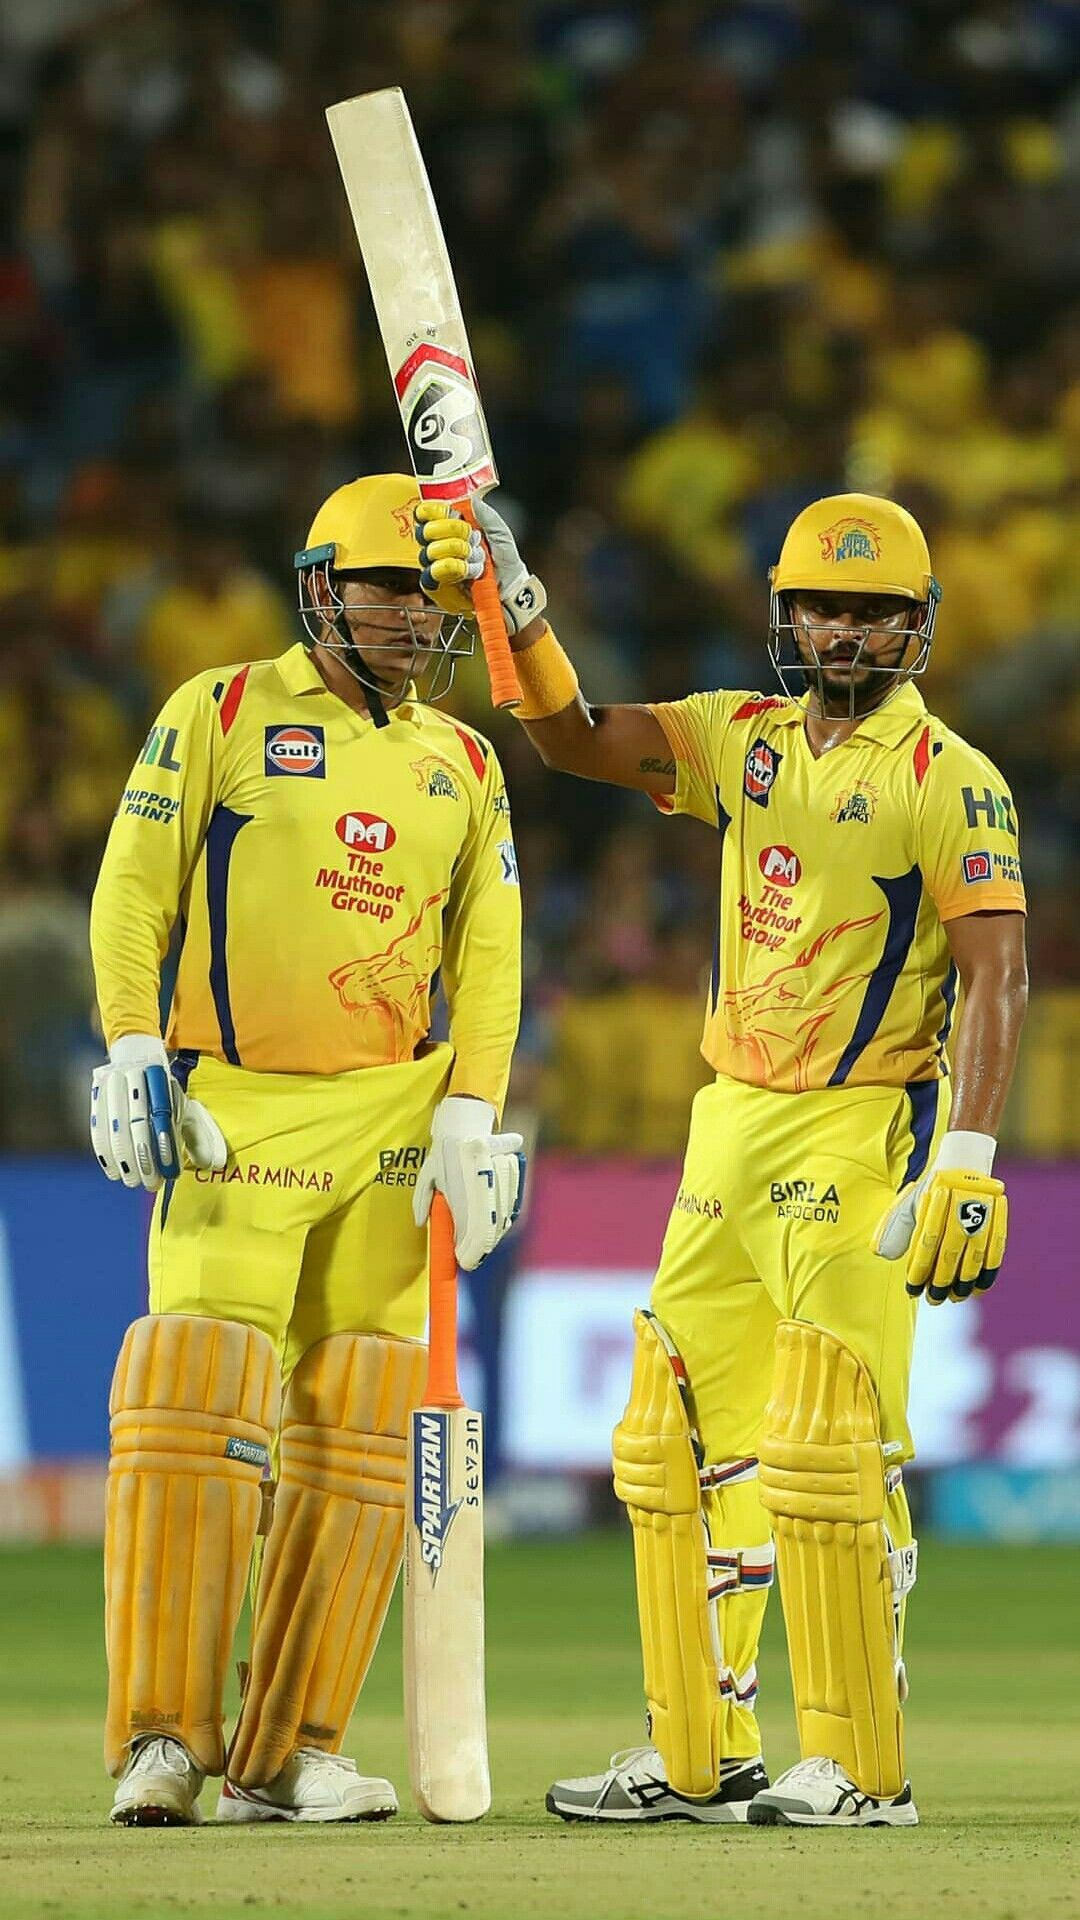 Csk Wallpaper Hd Resolution Hupages Download Iphone Wallpapers Cricket Wallpapers Ms Dhoni Wallpapers Ms Dhoni Photos